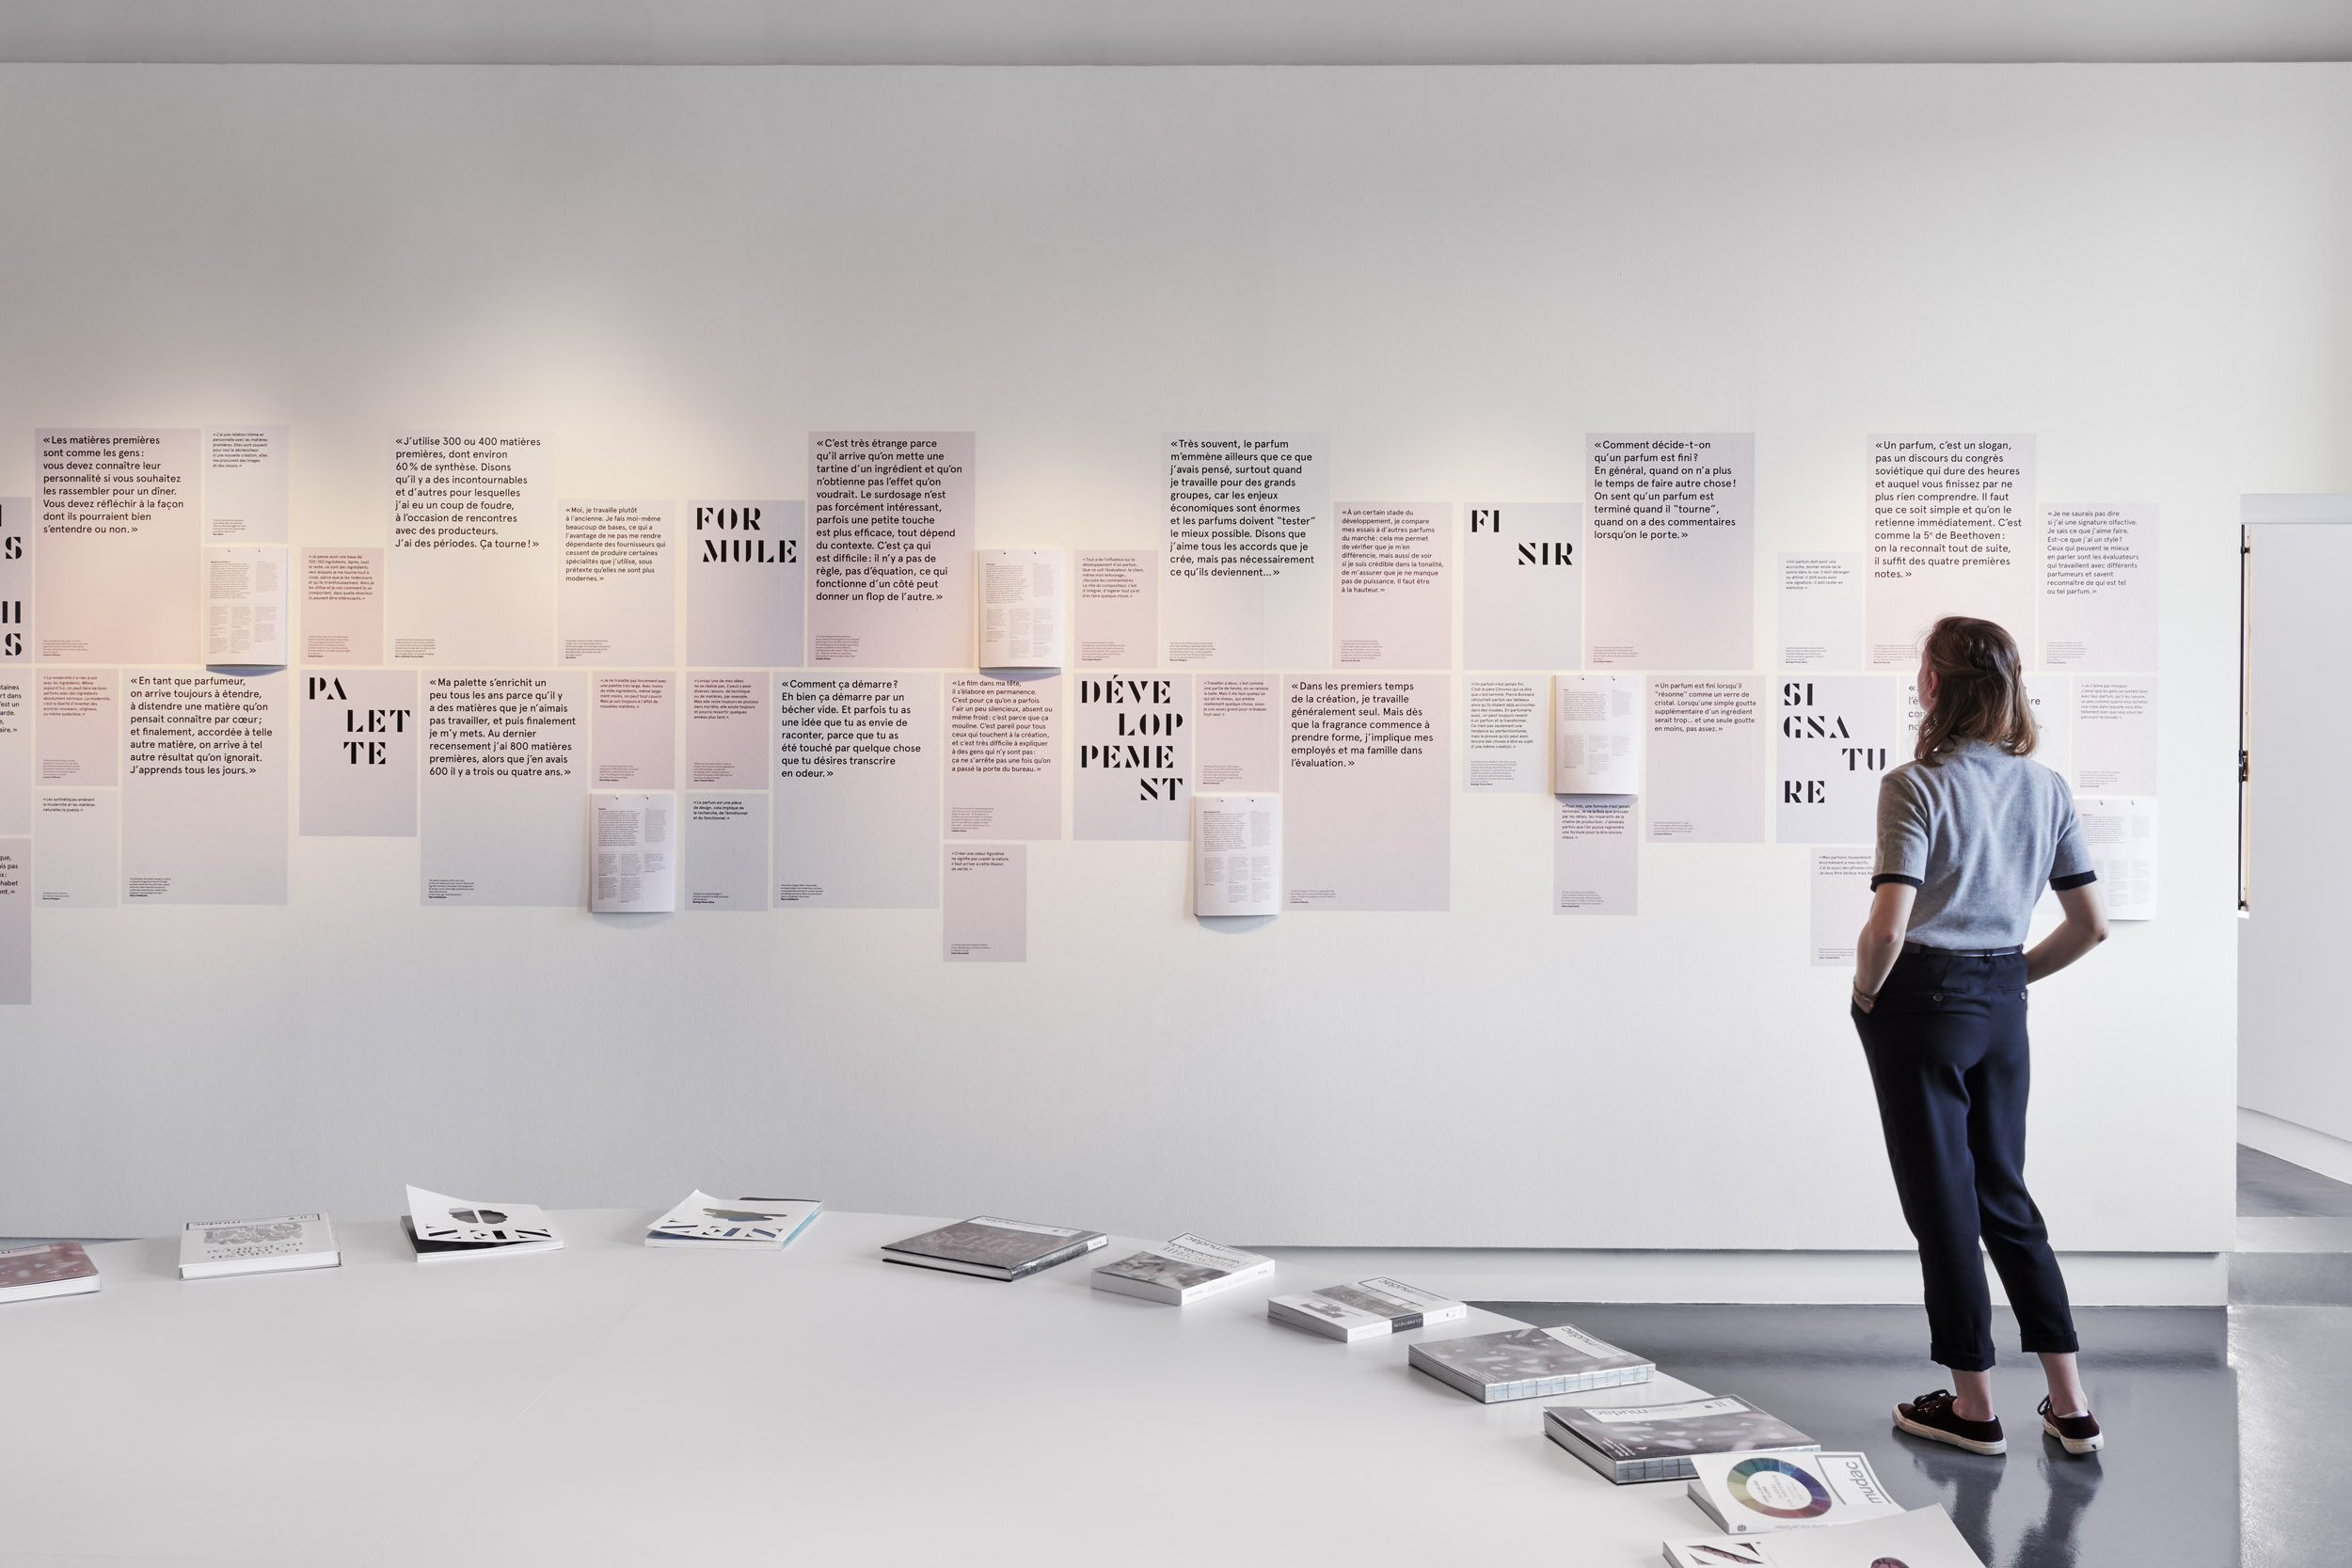 A visitor reads exhibition information texts